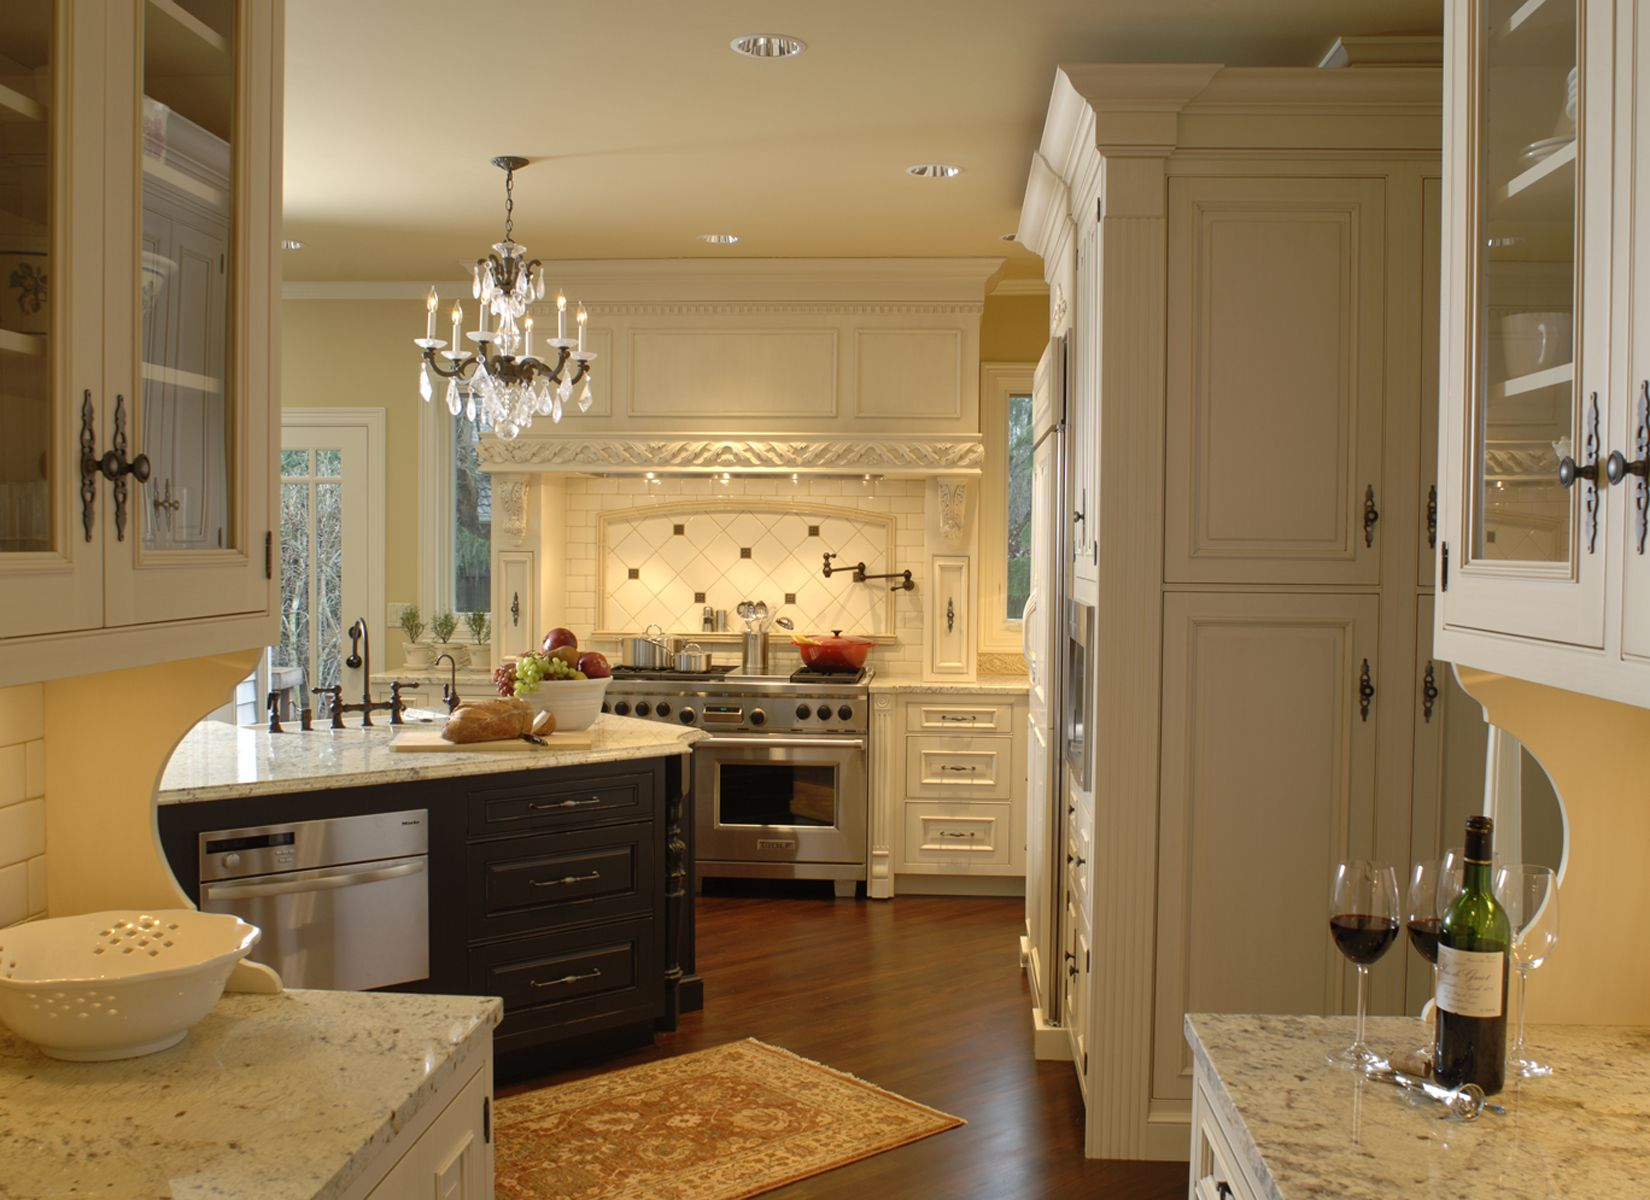 Classic French Kitchen Remodel Portland Oregon  French Kitchens Stunning Luxury Kitchen Designers Design Inspiration